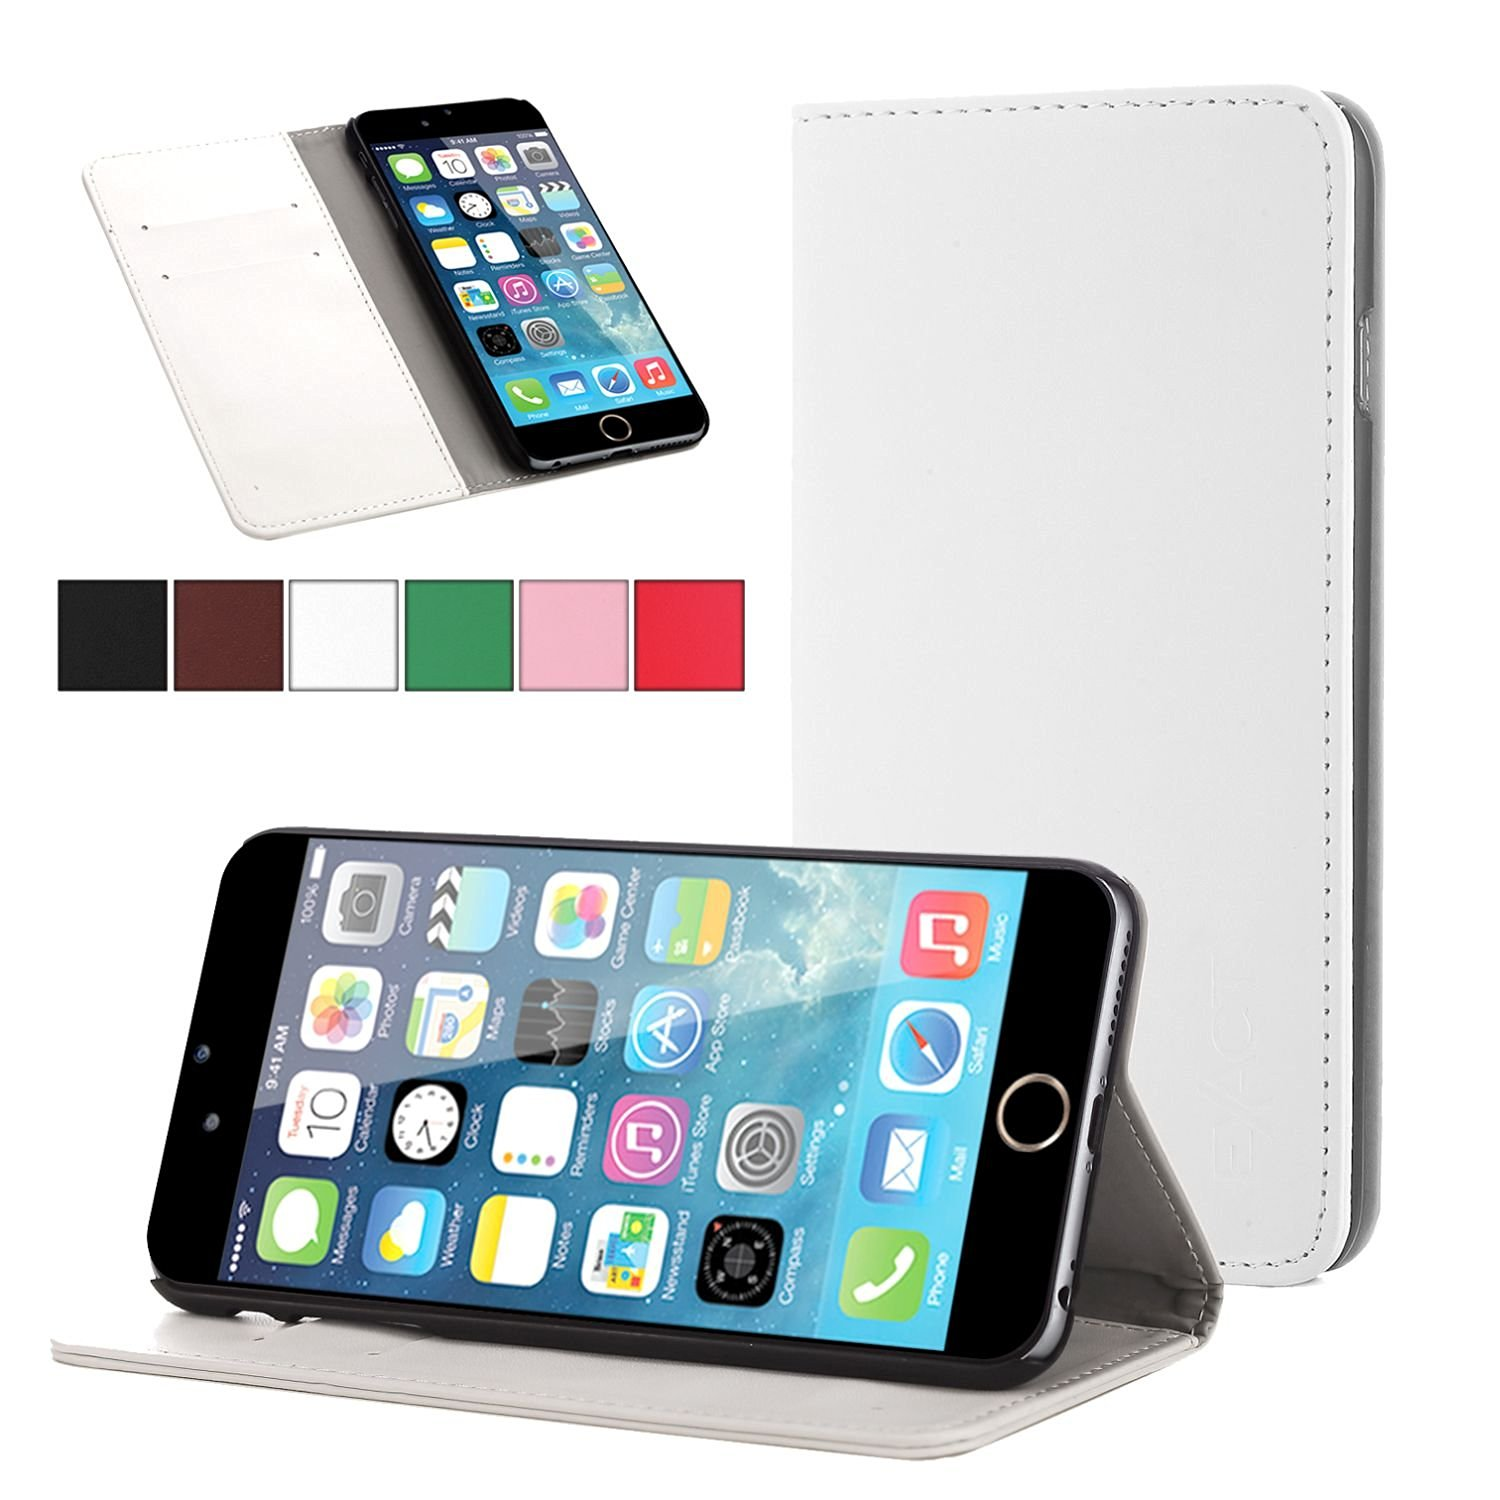 iPhone 6 Plus Case - Exact Apple iPhone 6 Plus 5.5 Case [BillFOLD Series] - PU Leather Wallet Flip Cover Case for Apple iPhone 6 Plus (5.5-inch)White